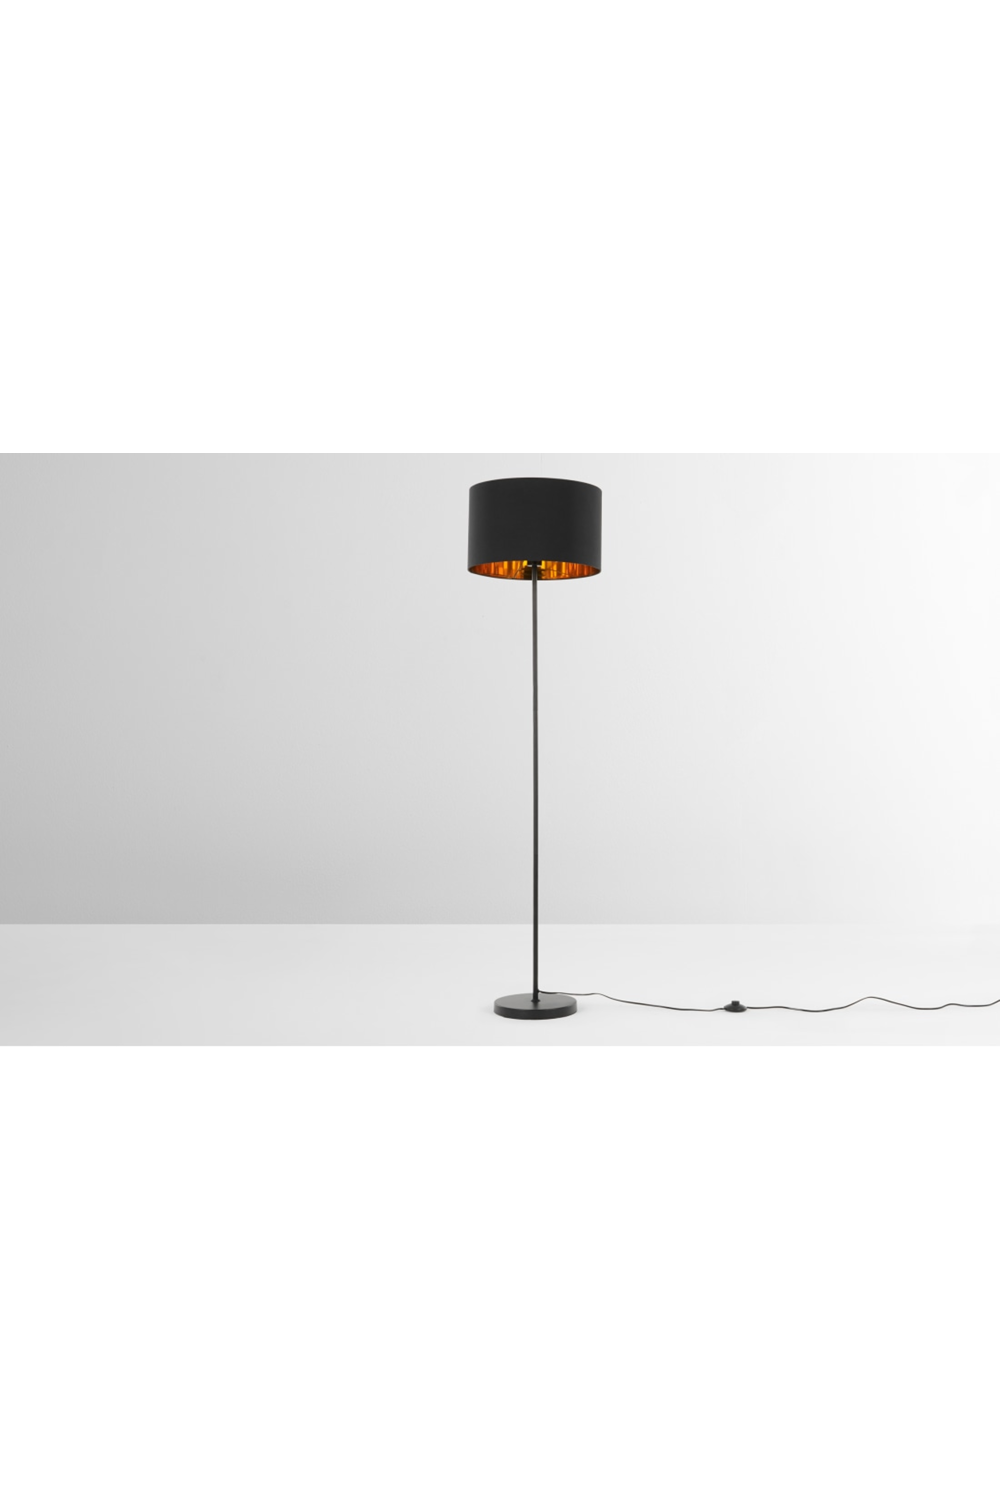 Made Stehlampe Kupfer Copper Floor Lamp Black Floor Lamp